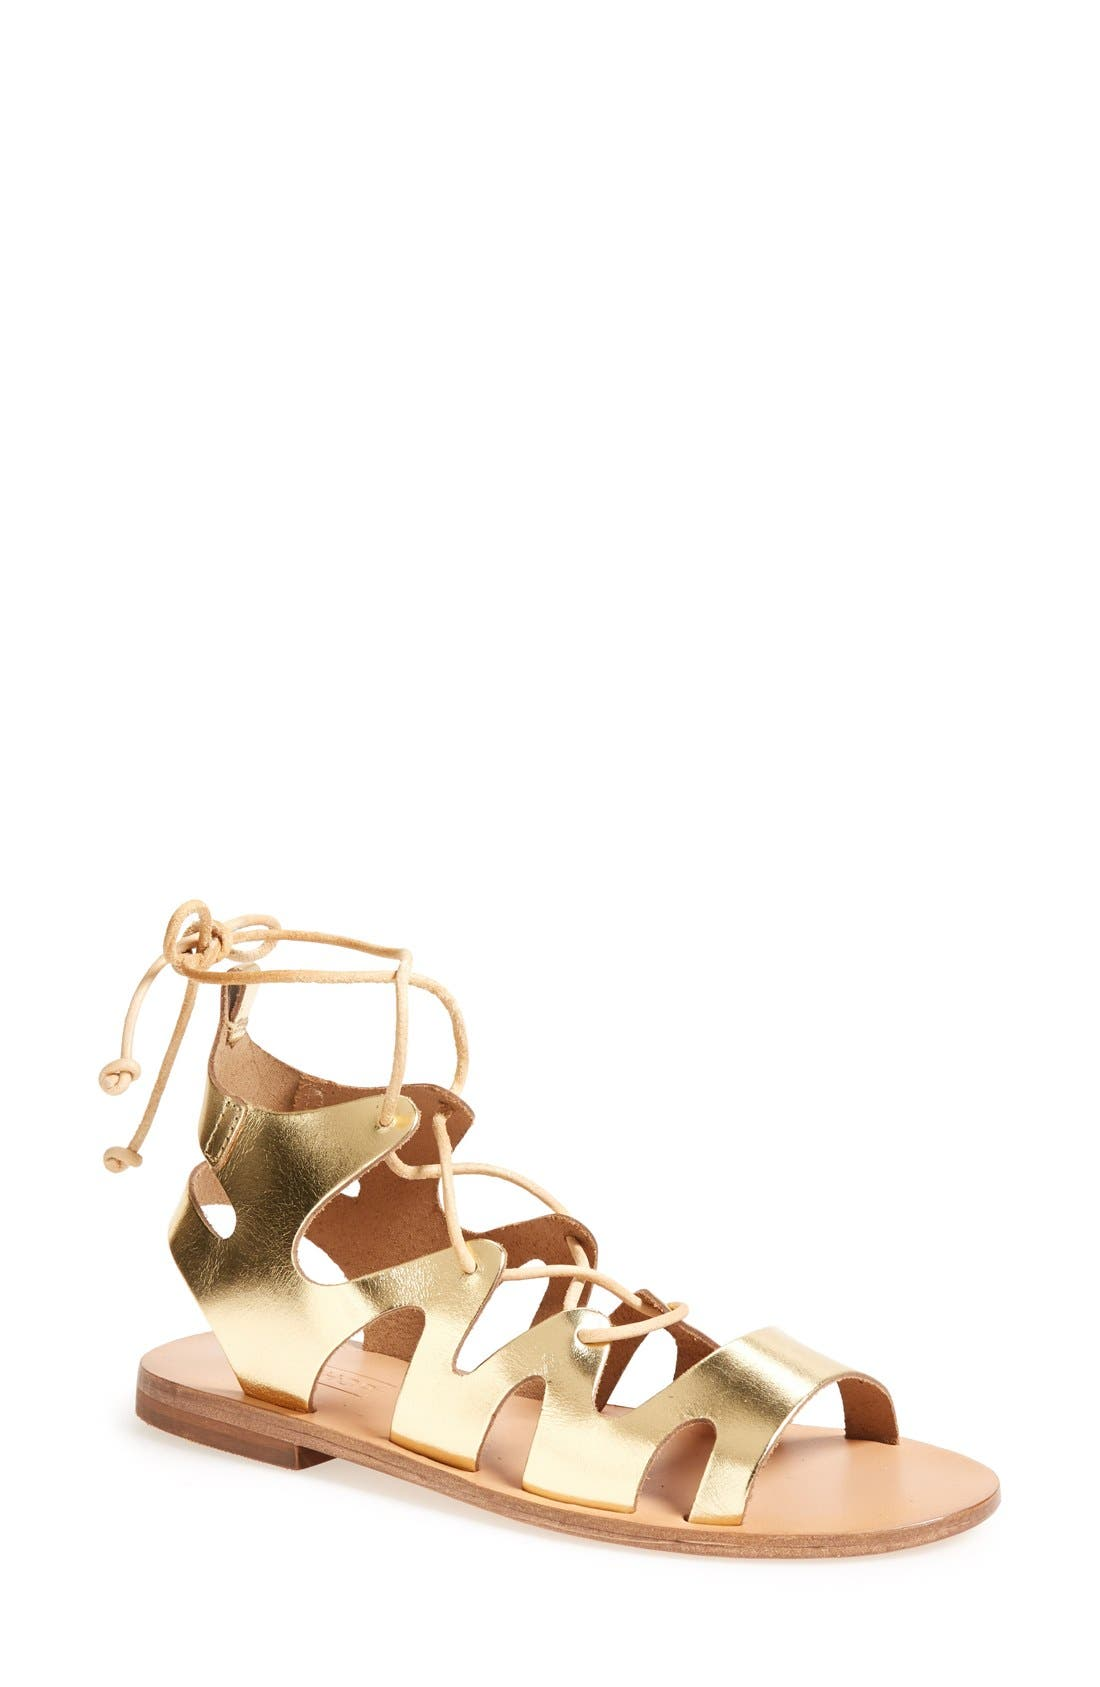 Alternate Image 1 Selected - Topshop 'Fig' Cutout Lace-Up Gladiator Sandal (Women)